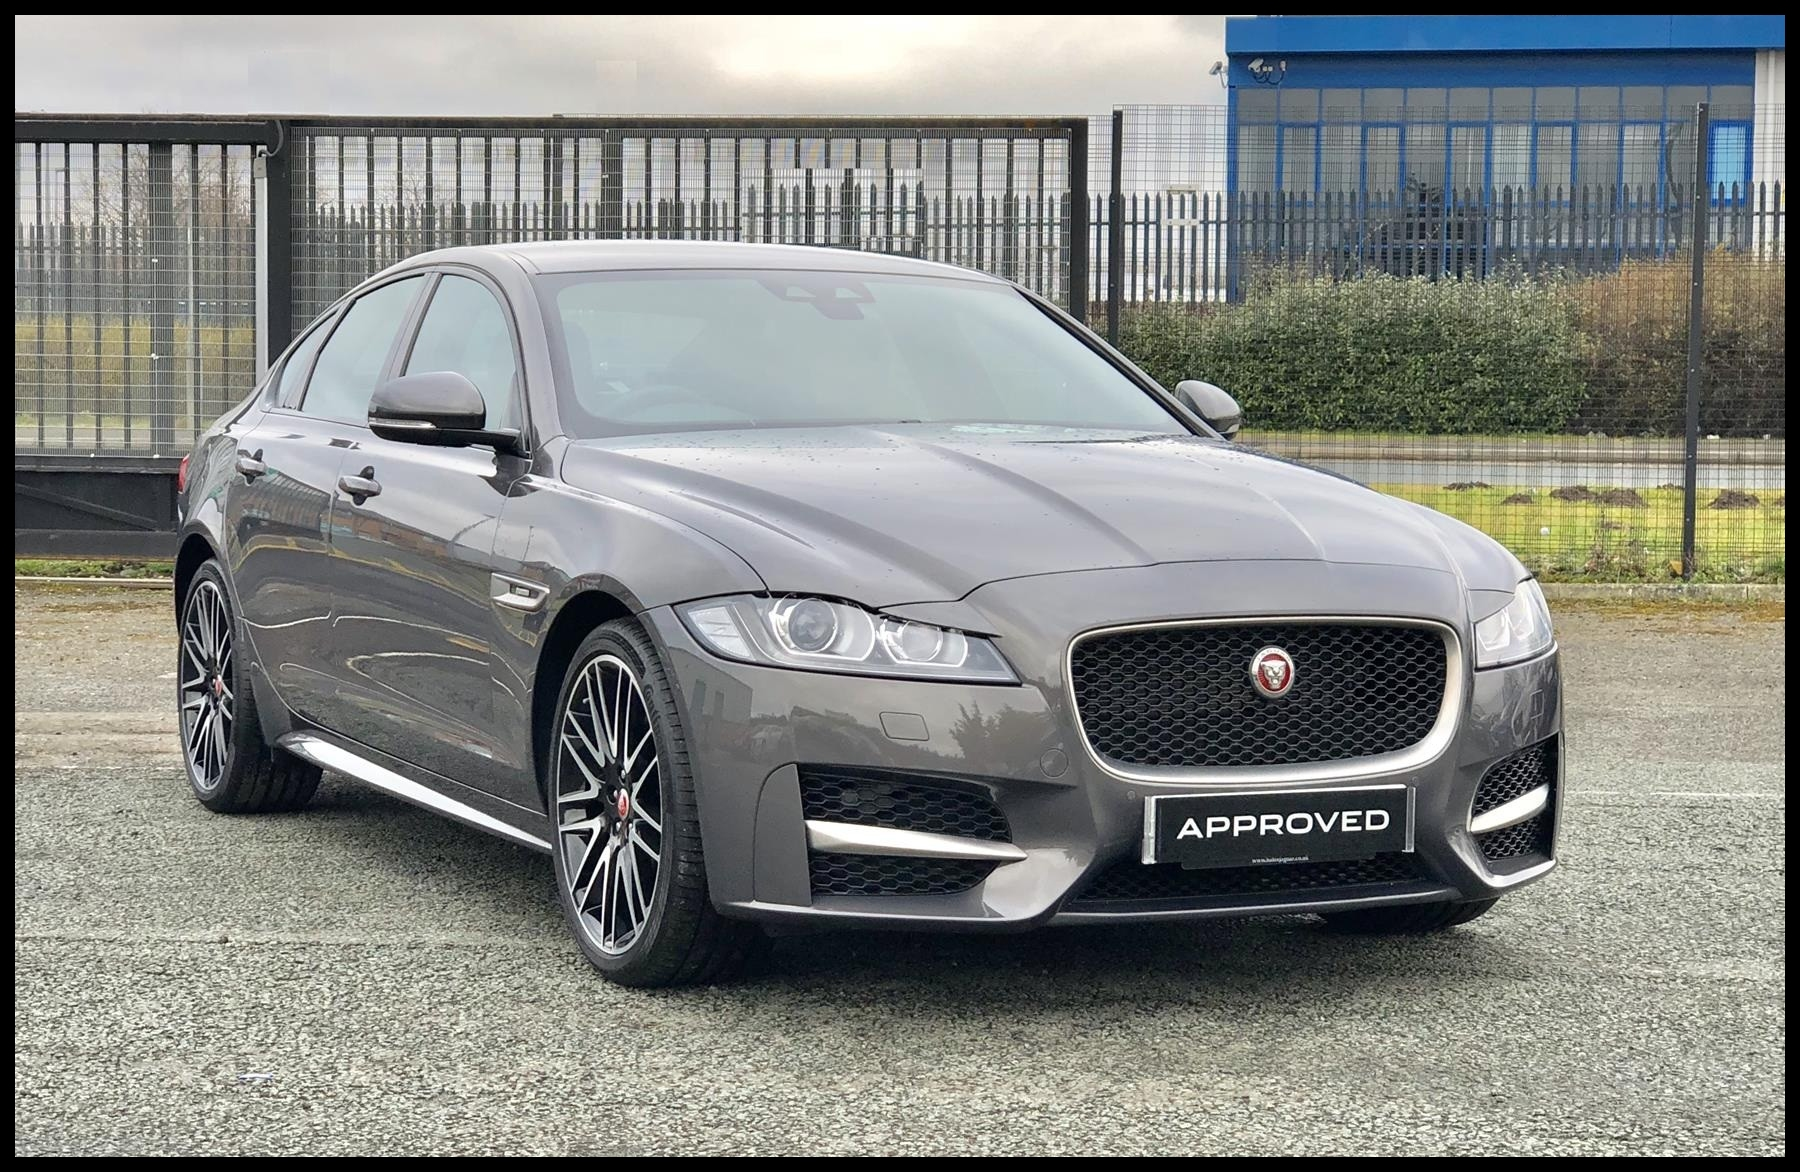 Estimate Used Car Value Best top Used Car Prices 2017 Used 2017 Jaguar Xf 2